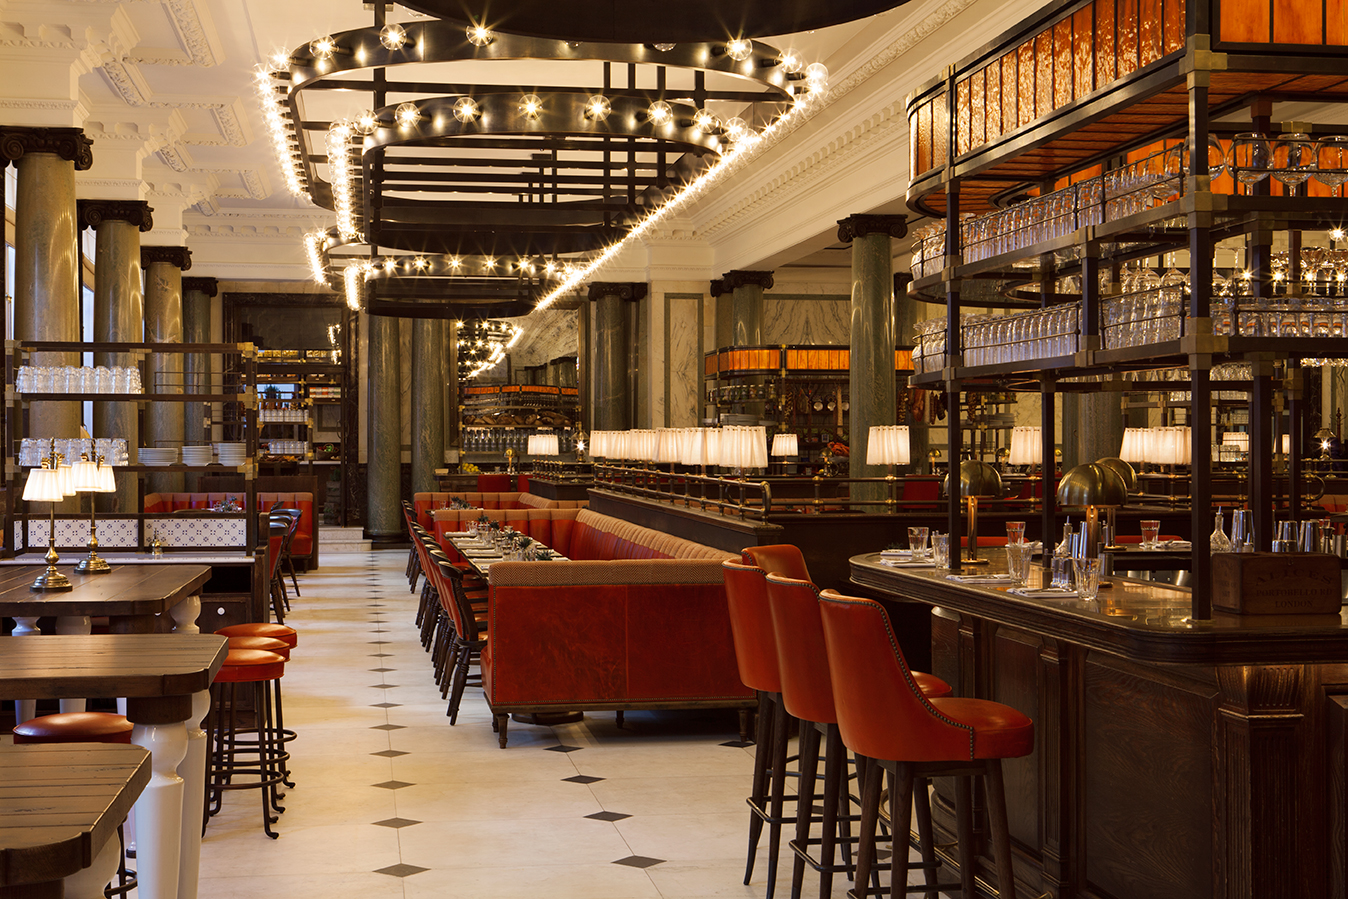 Merveilleux Holborn Dining Room Open For Previews 18 February At Rosewood London